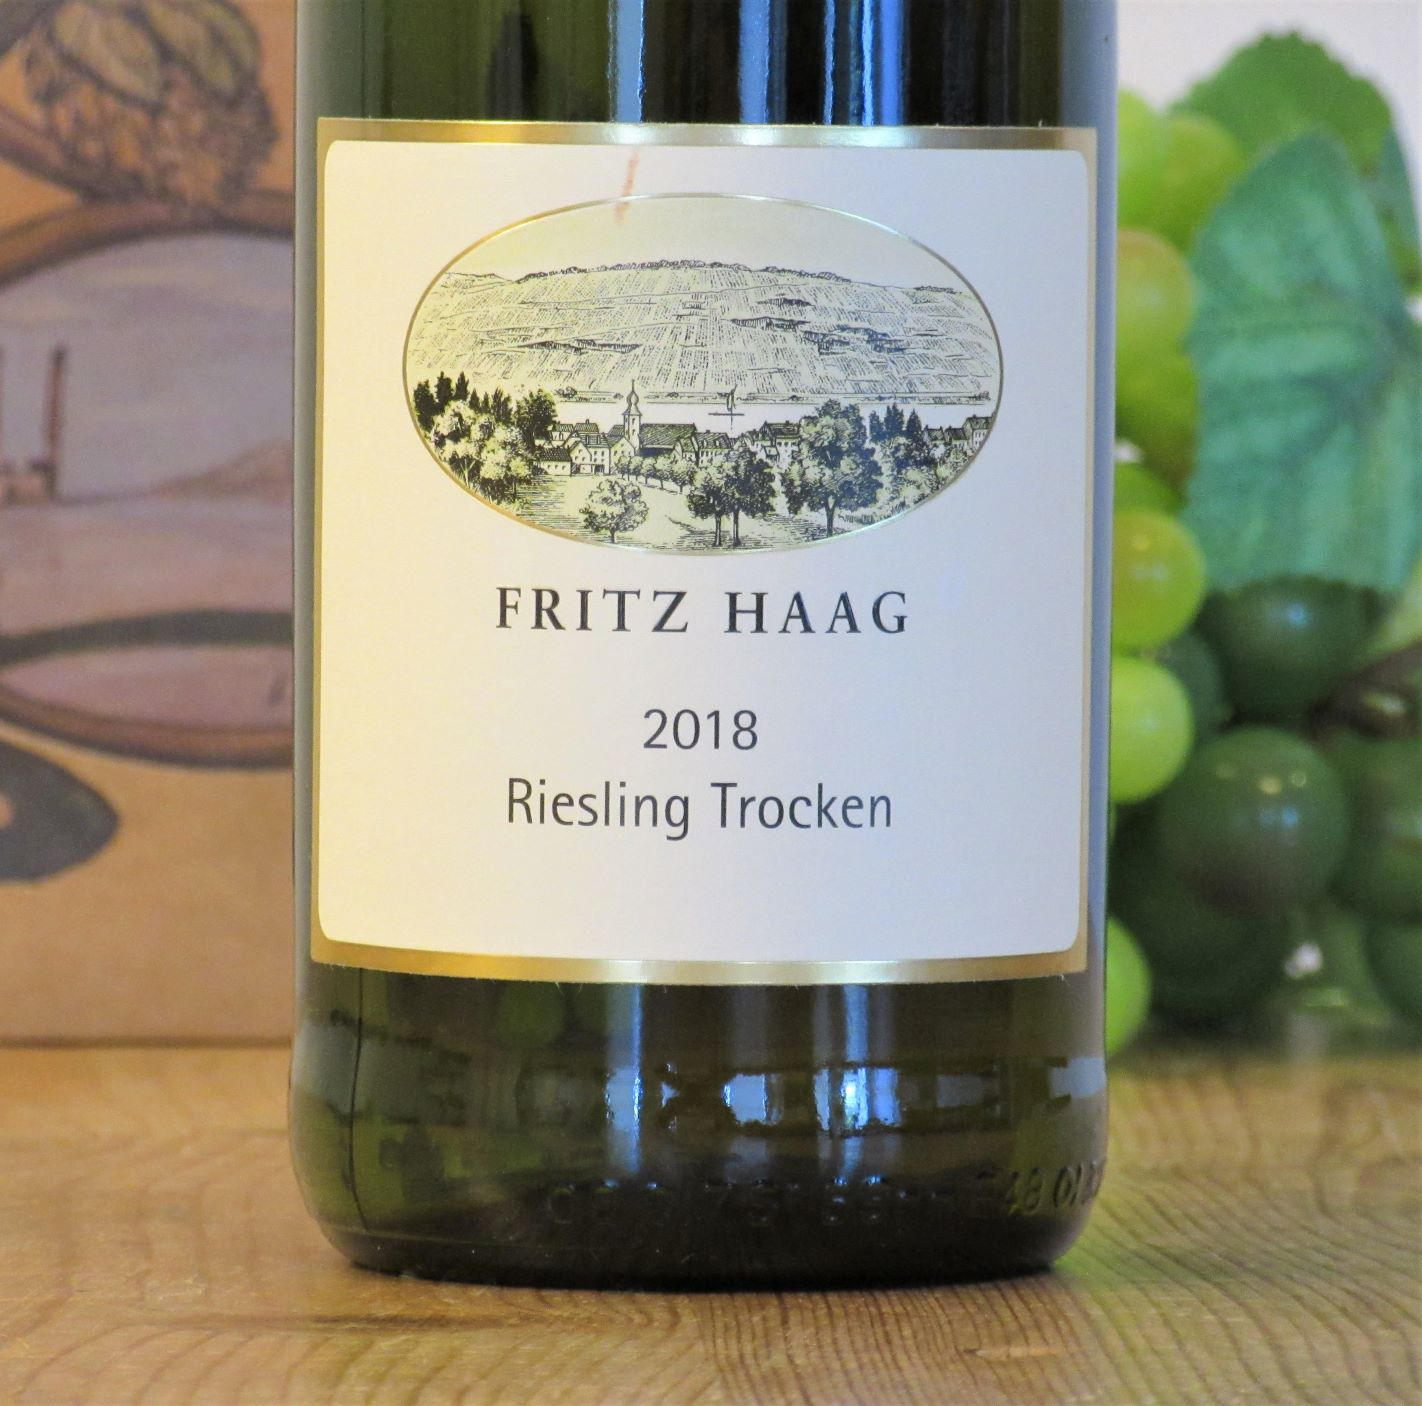 Fritz Haag Riesling 2018